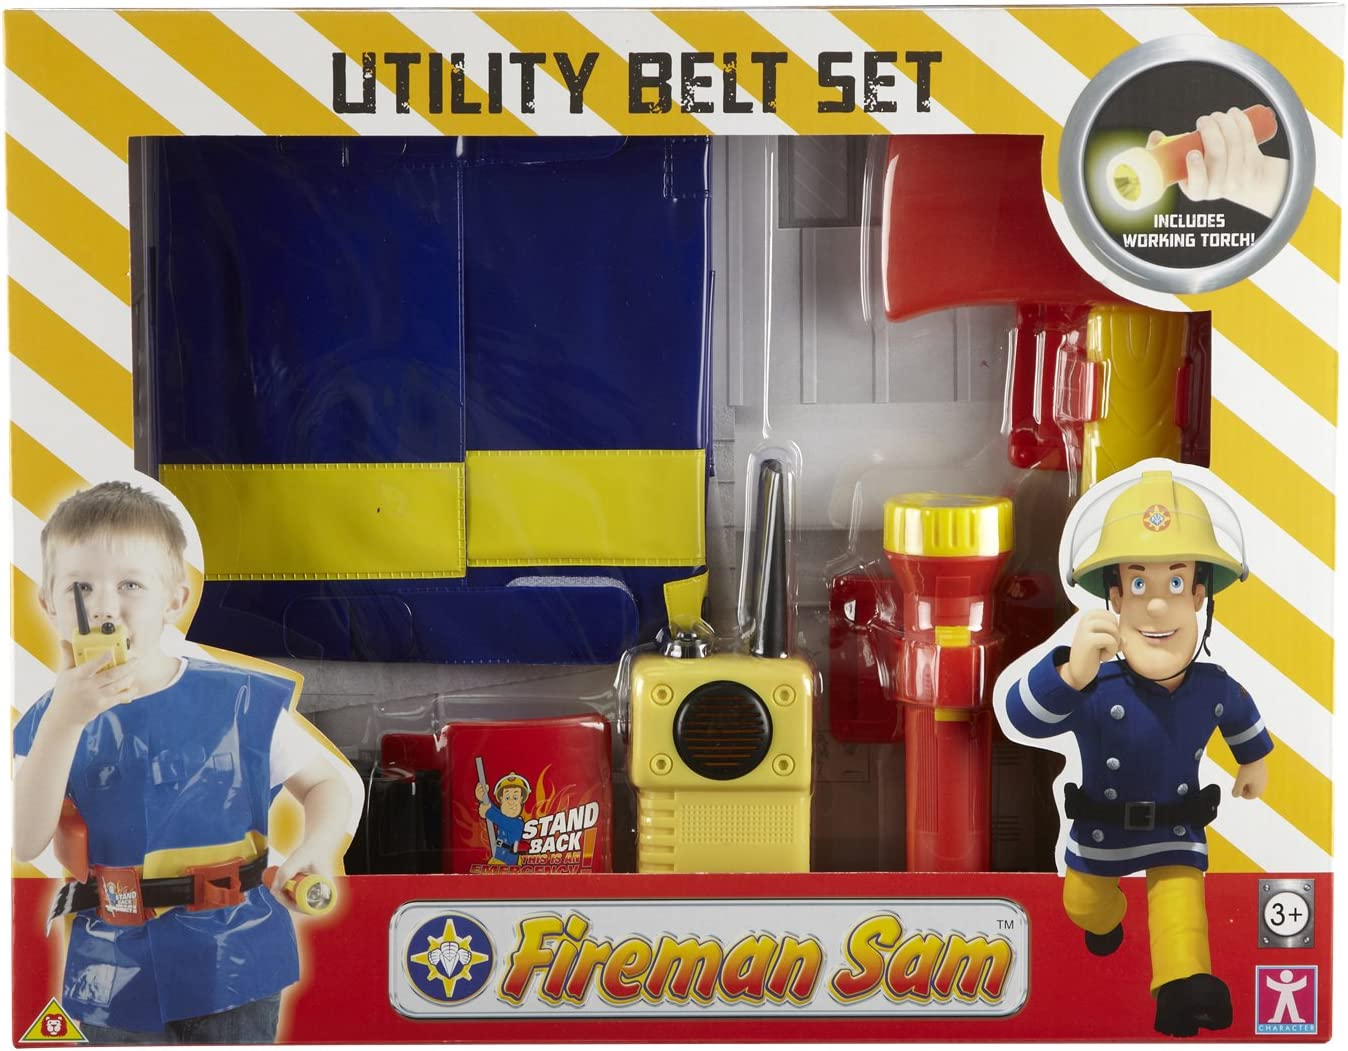 Real Heroes Firefighter Deluxe Play Set avec casque et accessoires